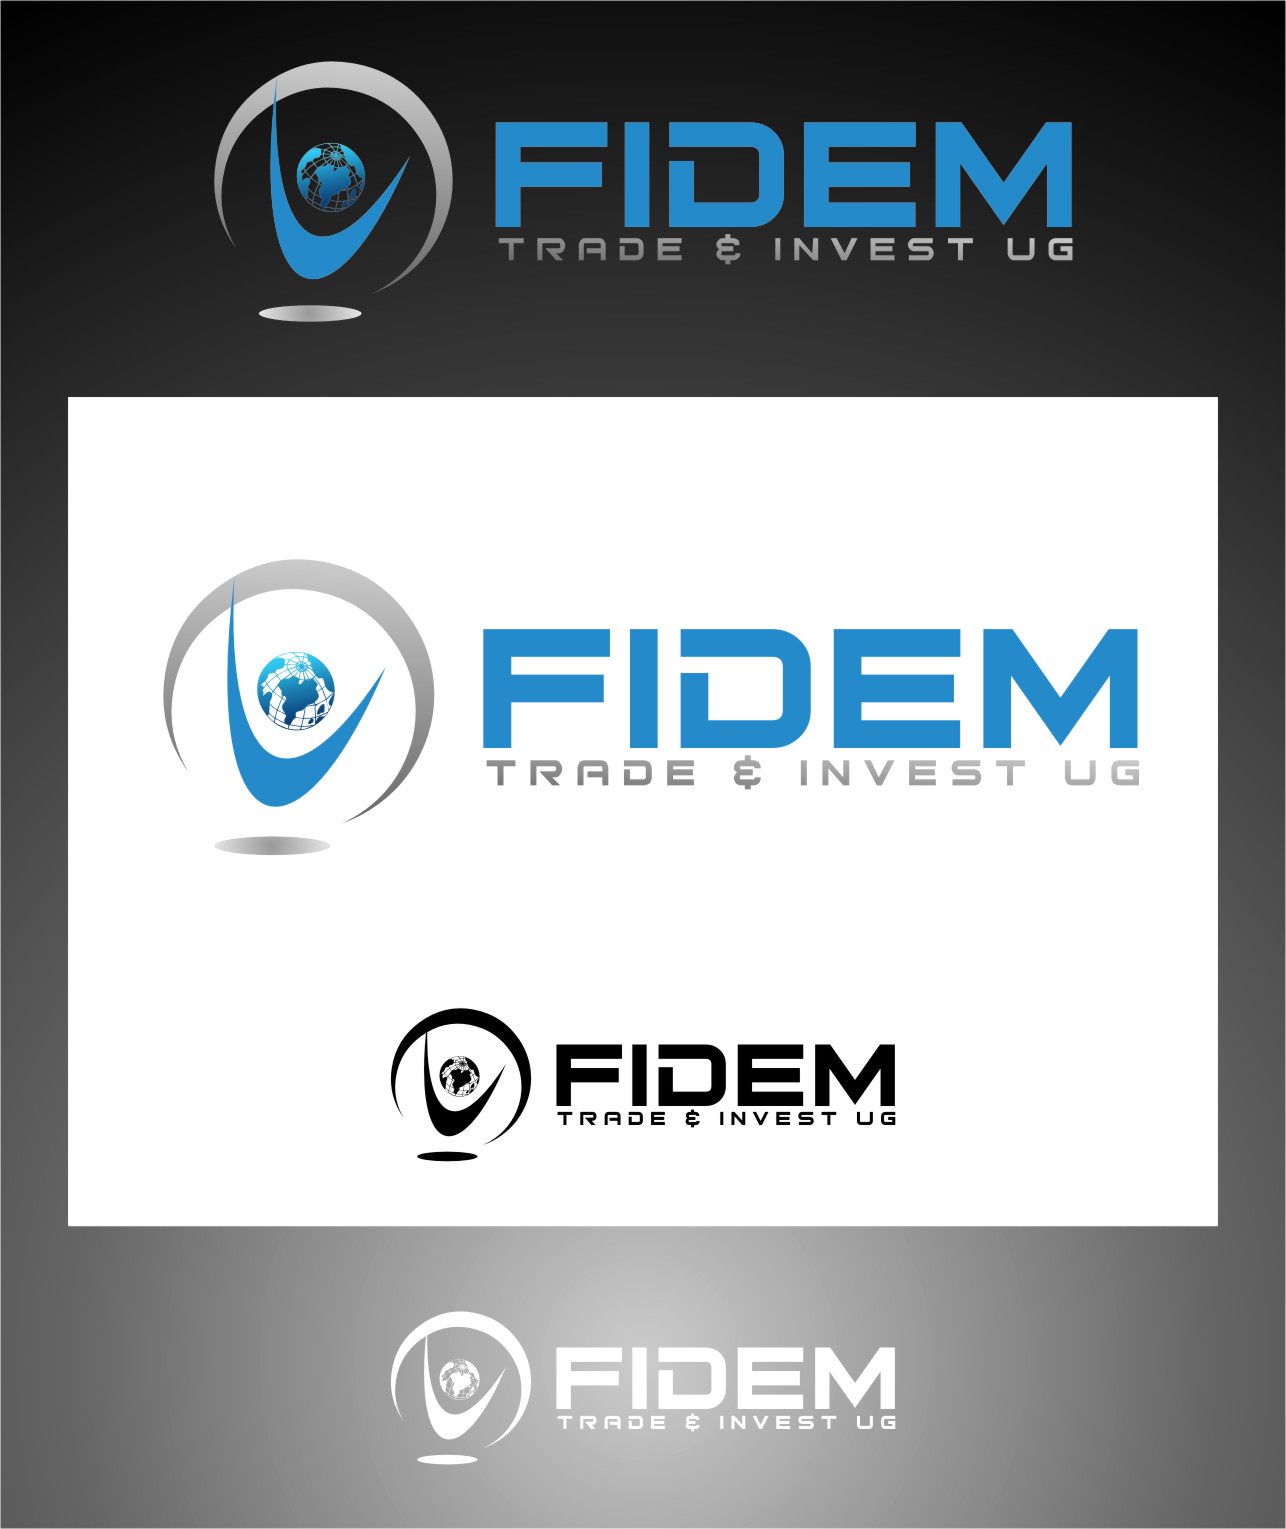 Logo Design by Ngepet_art - Entry No. 528 in the Logo Design Contest Professional Logo Design for FIDEM Trade & Invest UG.